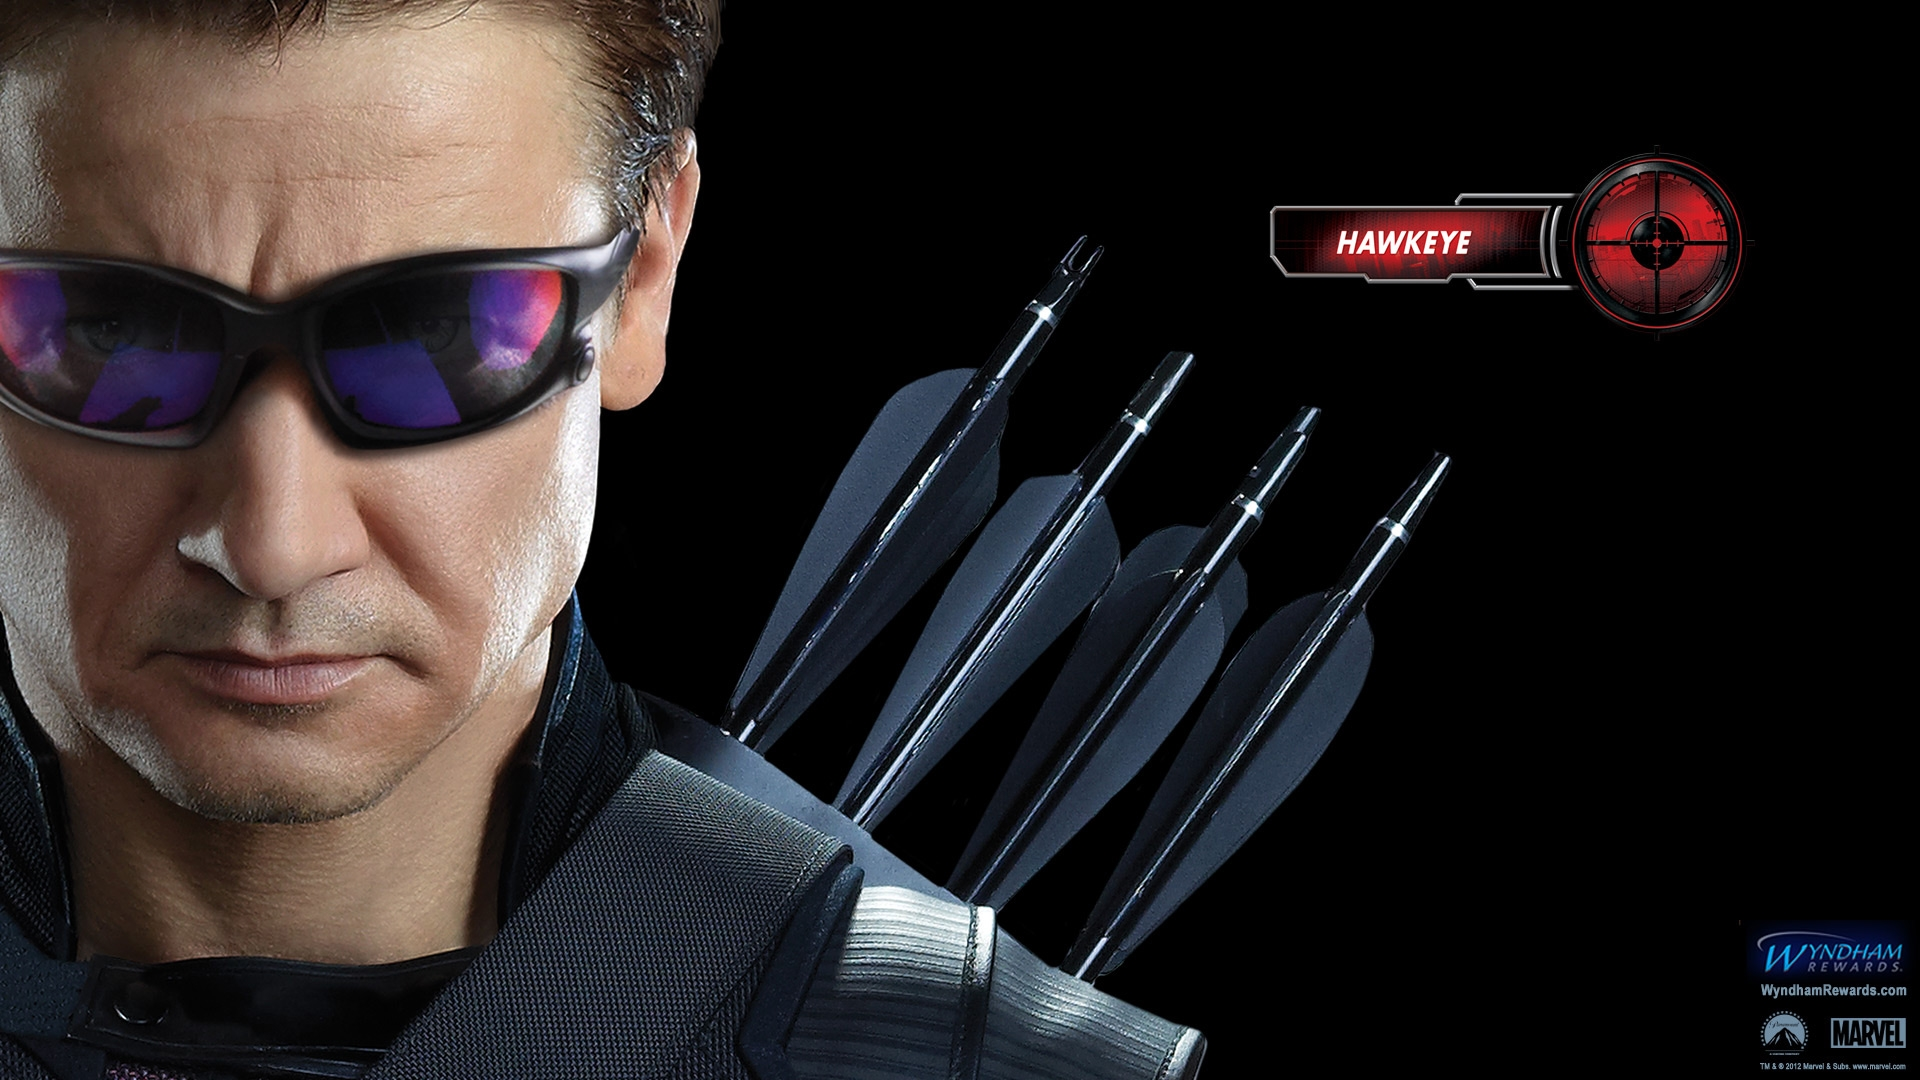 Hawkeye Wallpapers   Page 1 1920x1080